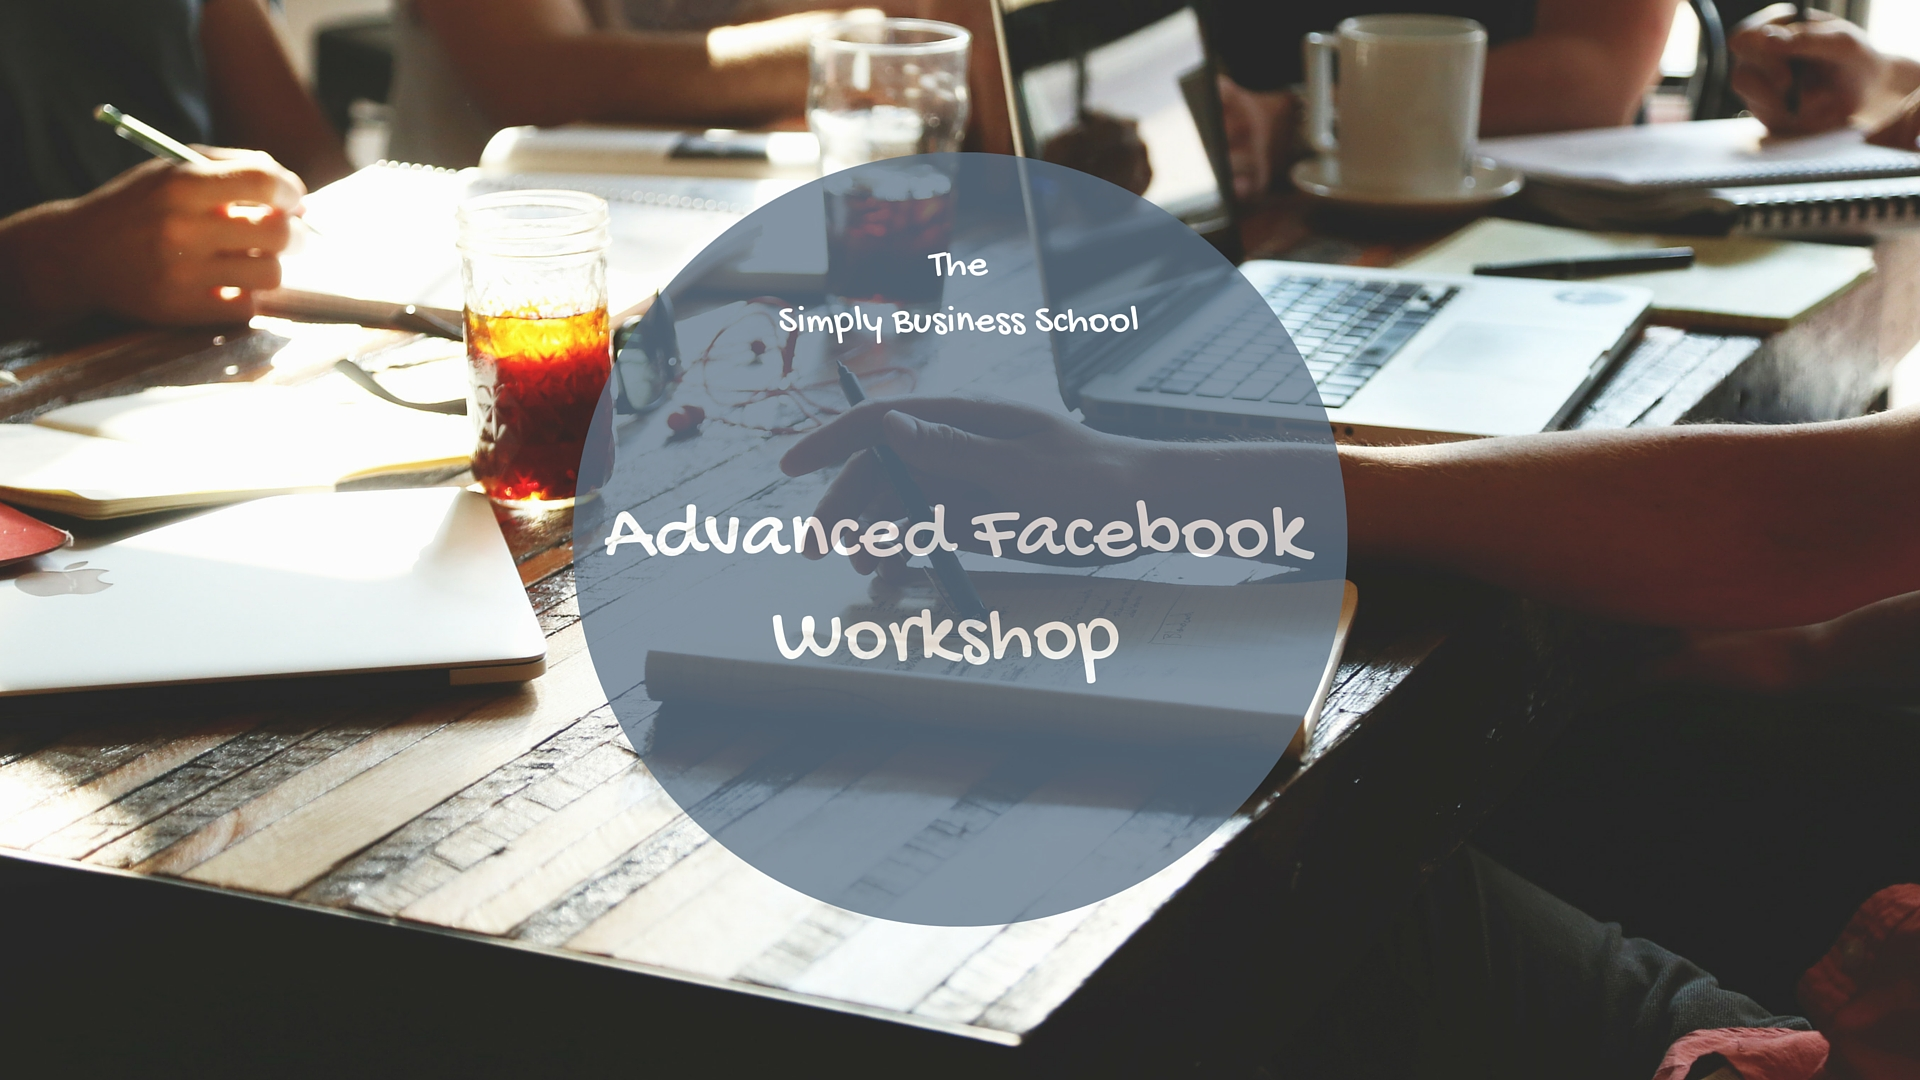 Advanced Facebook Workshop